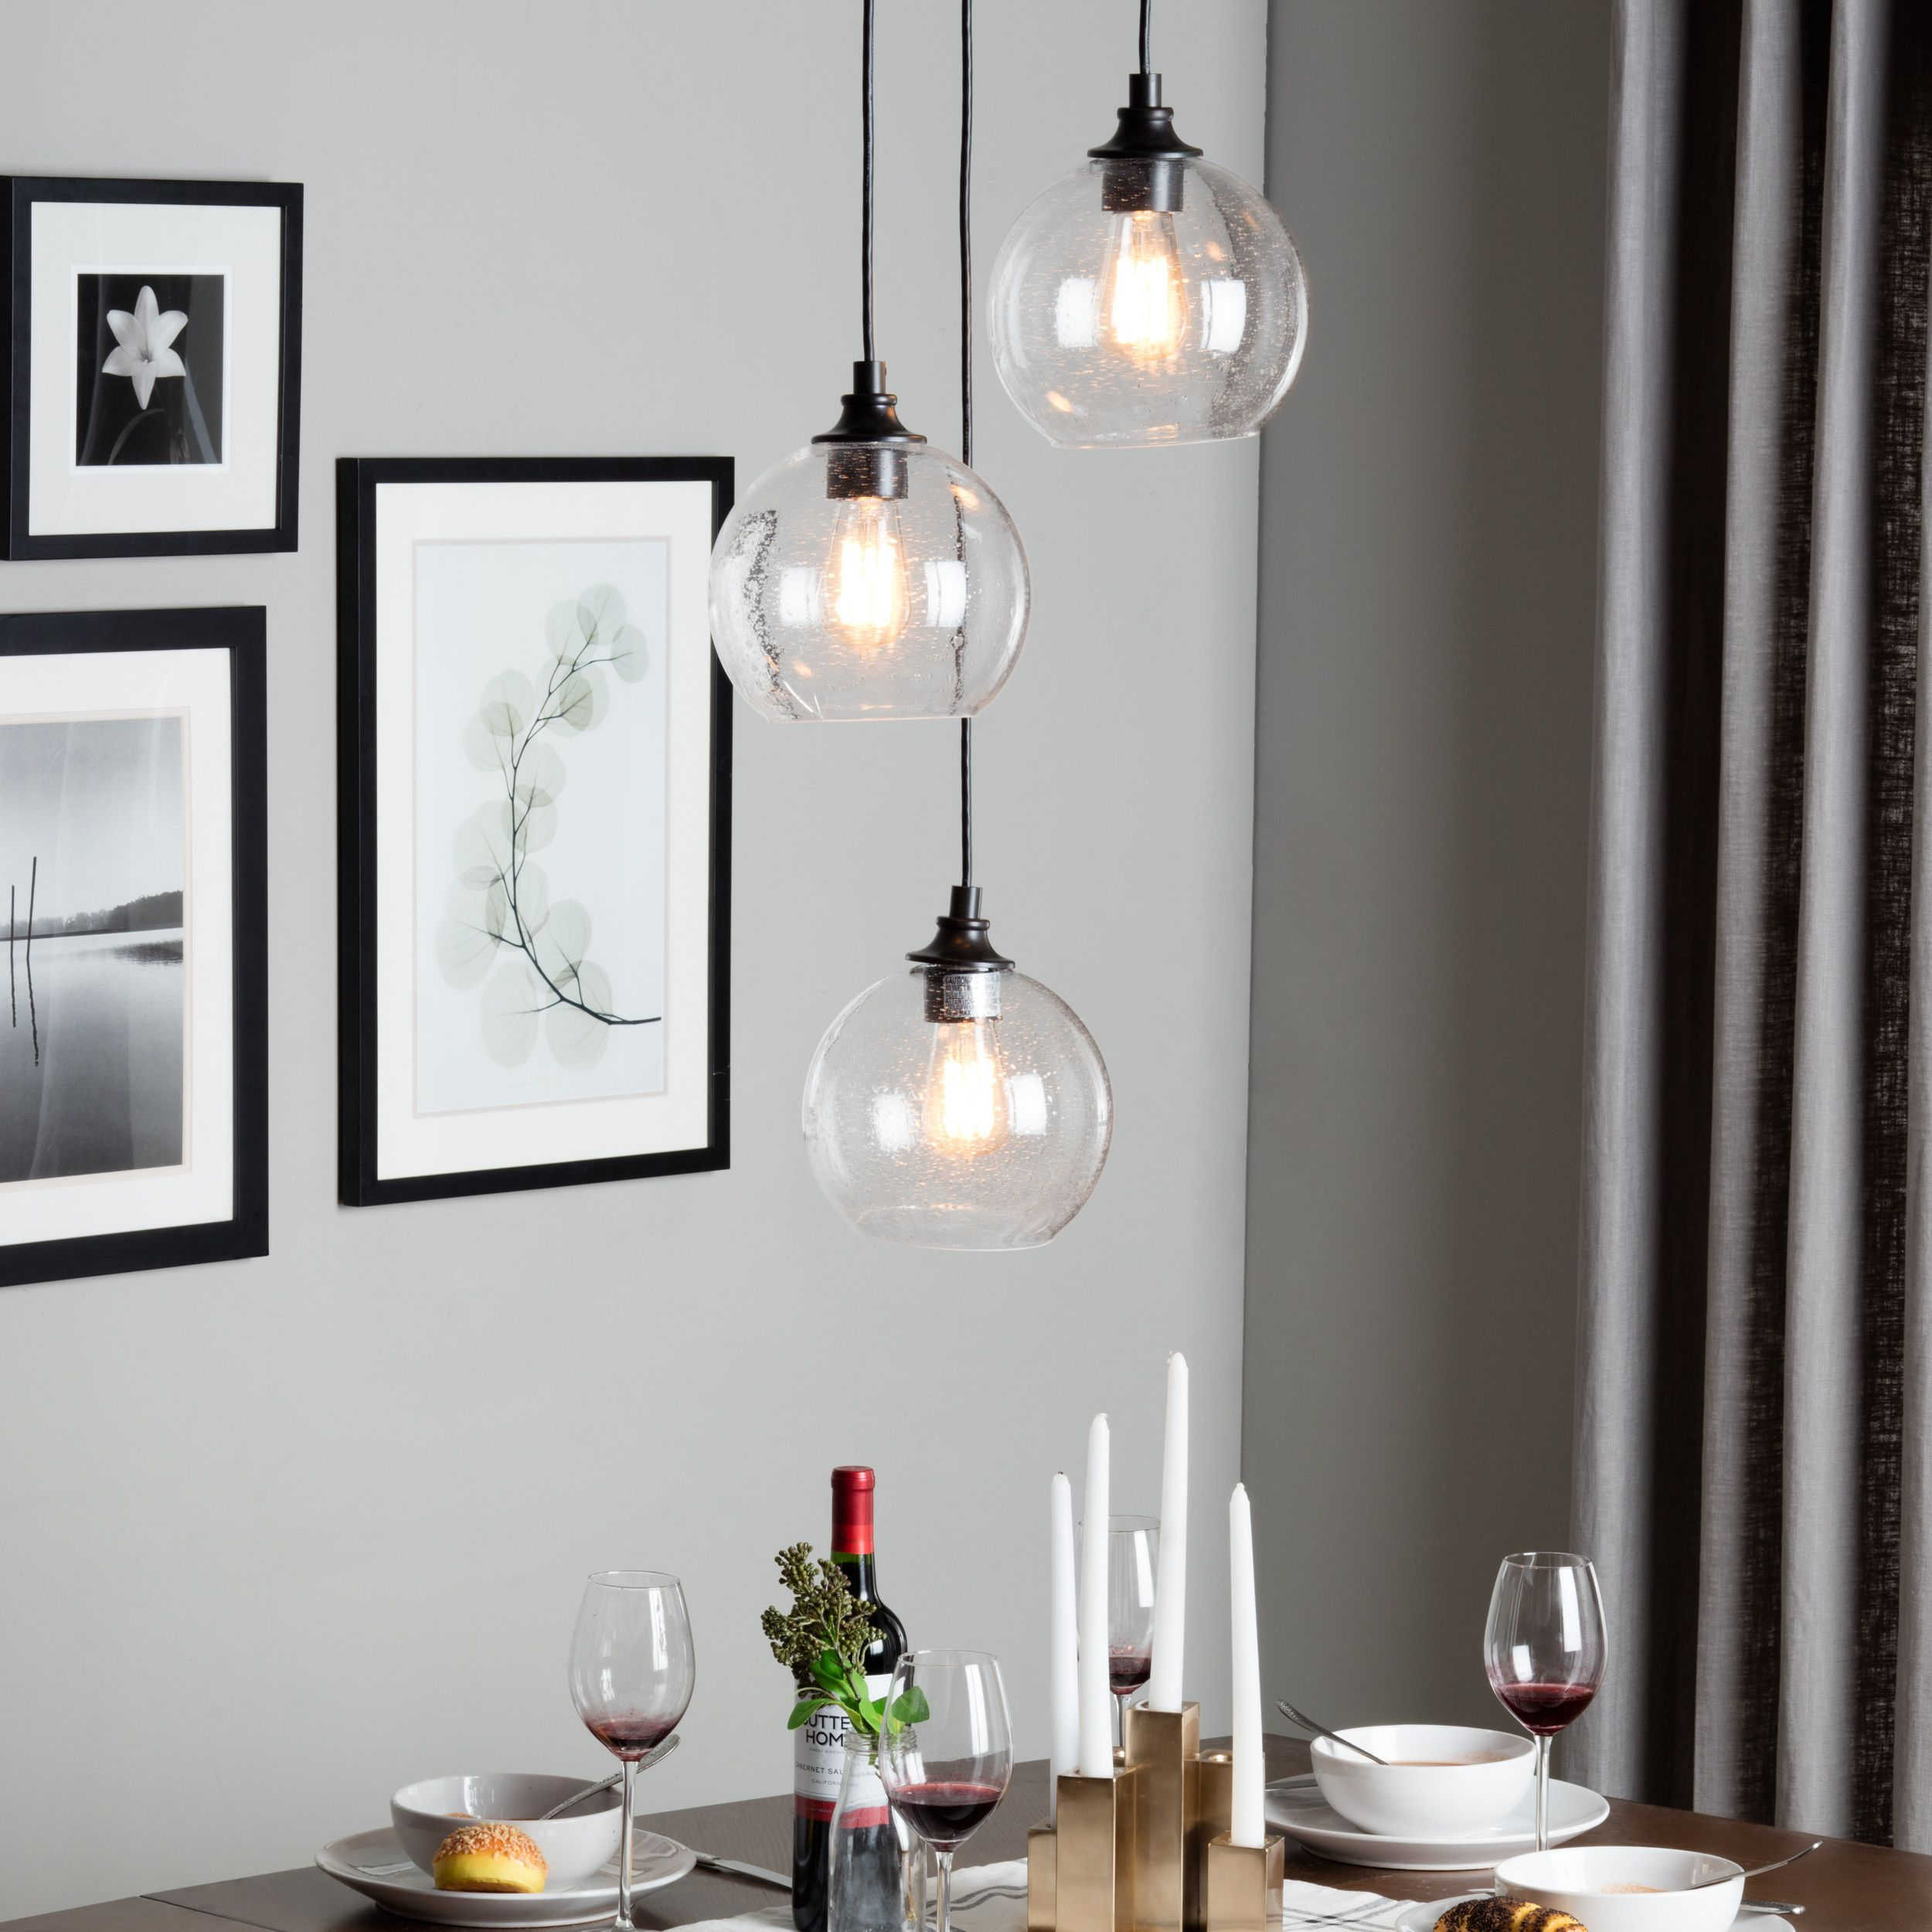 Pendant Lighting For Dining Room   Suspended From The Ceilings In Such A  Beautiful Way Using